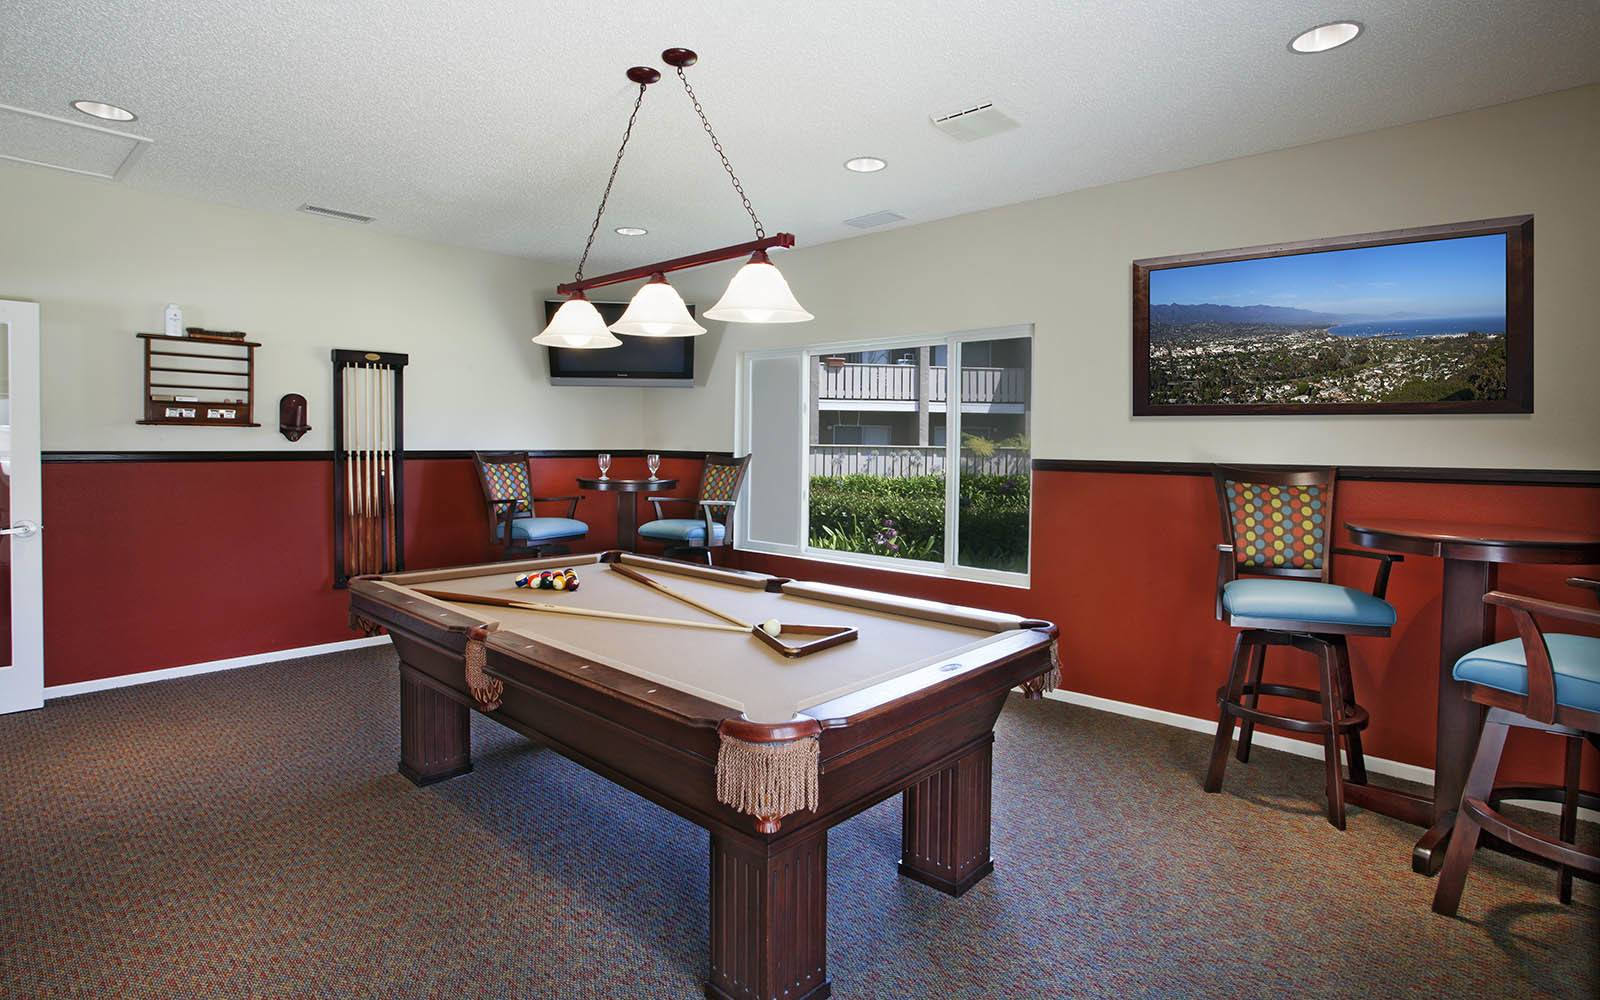 Billiards at apartments in Santa Barbara, CA